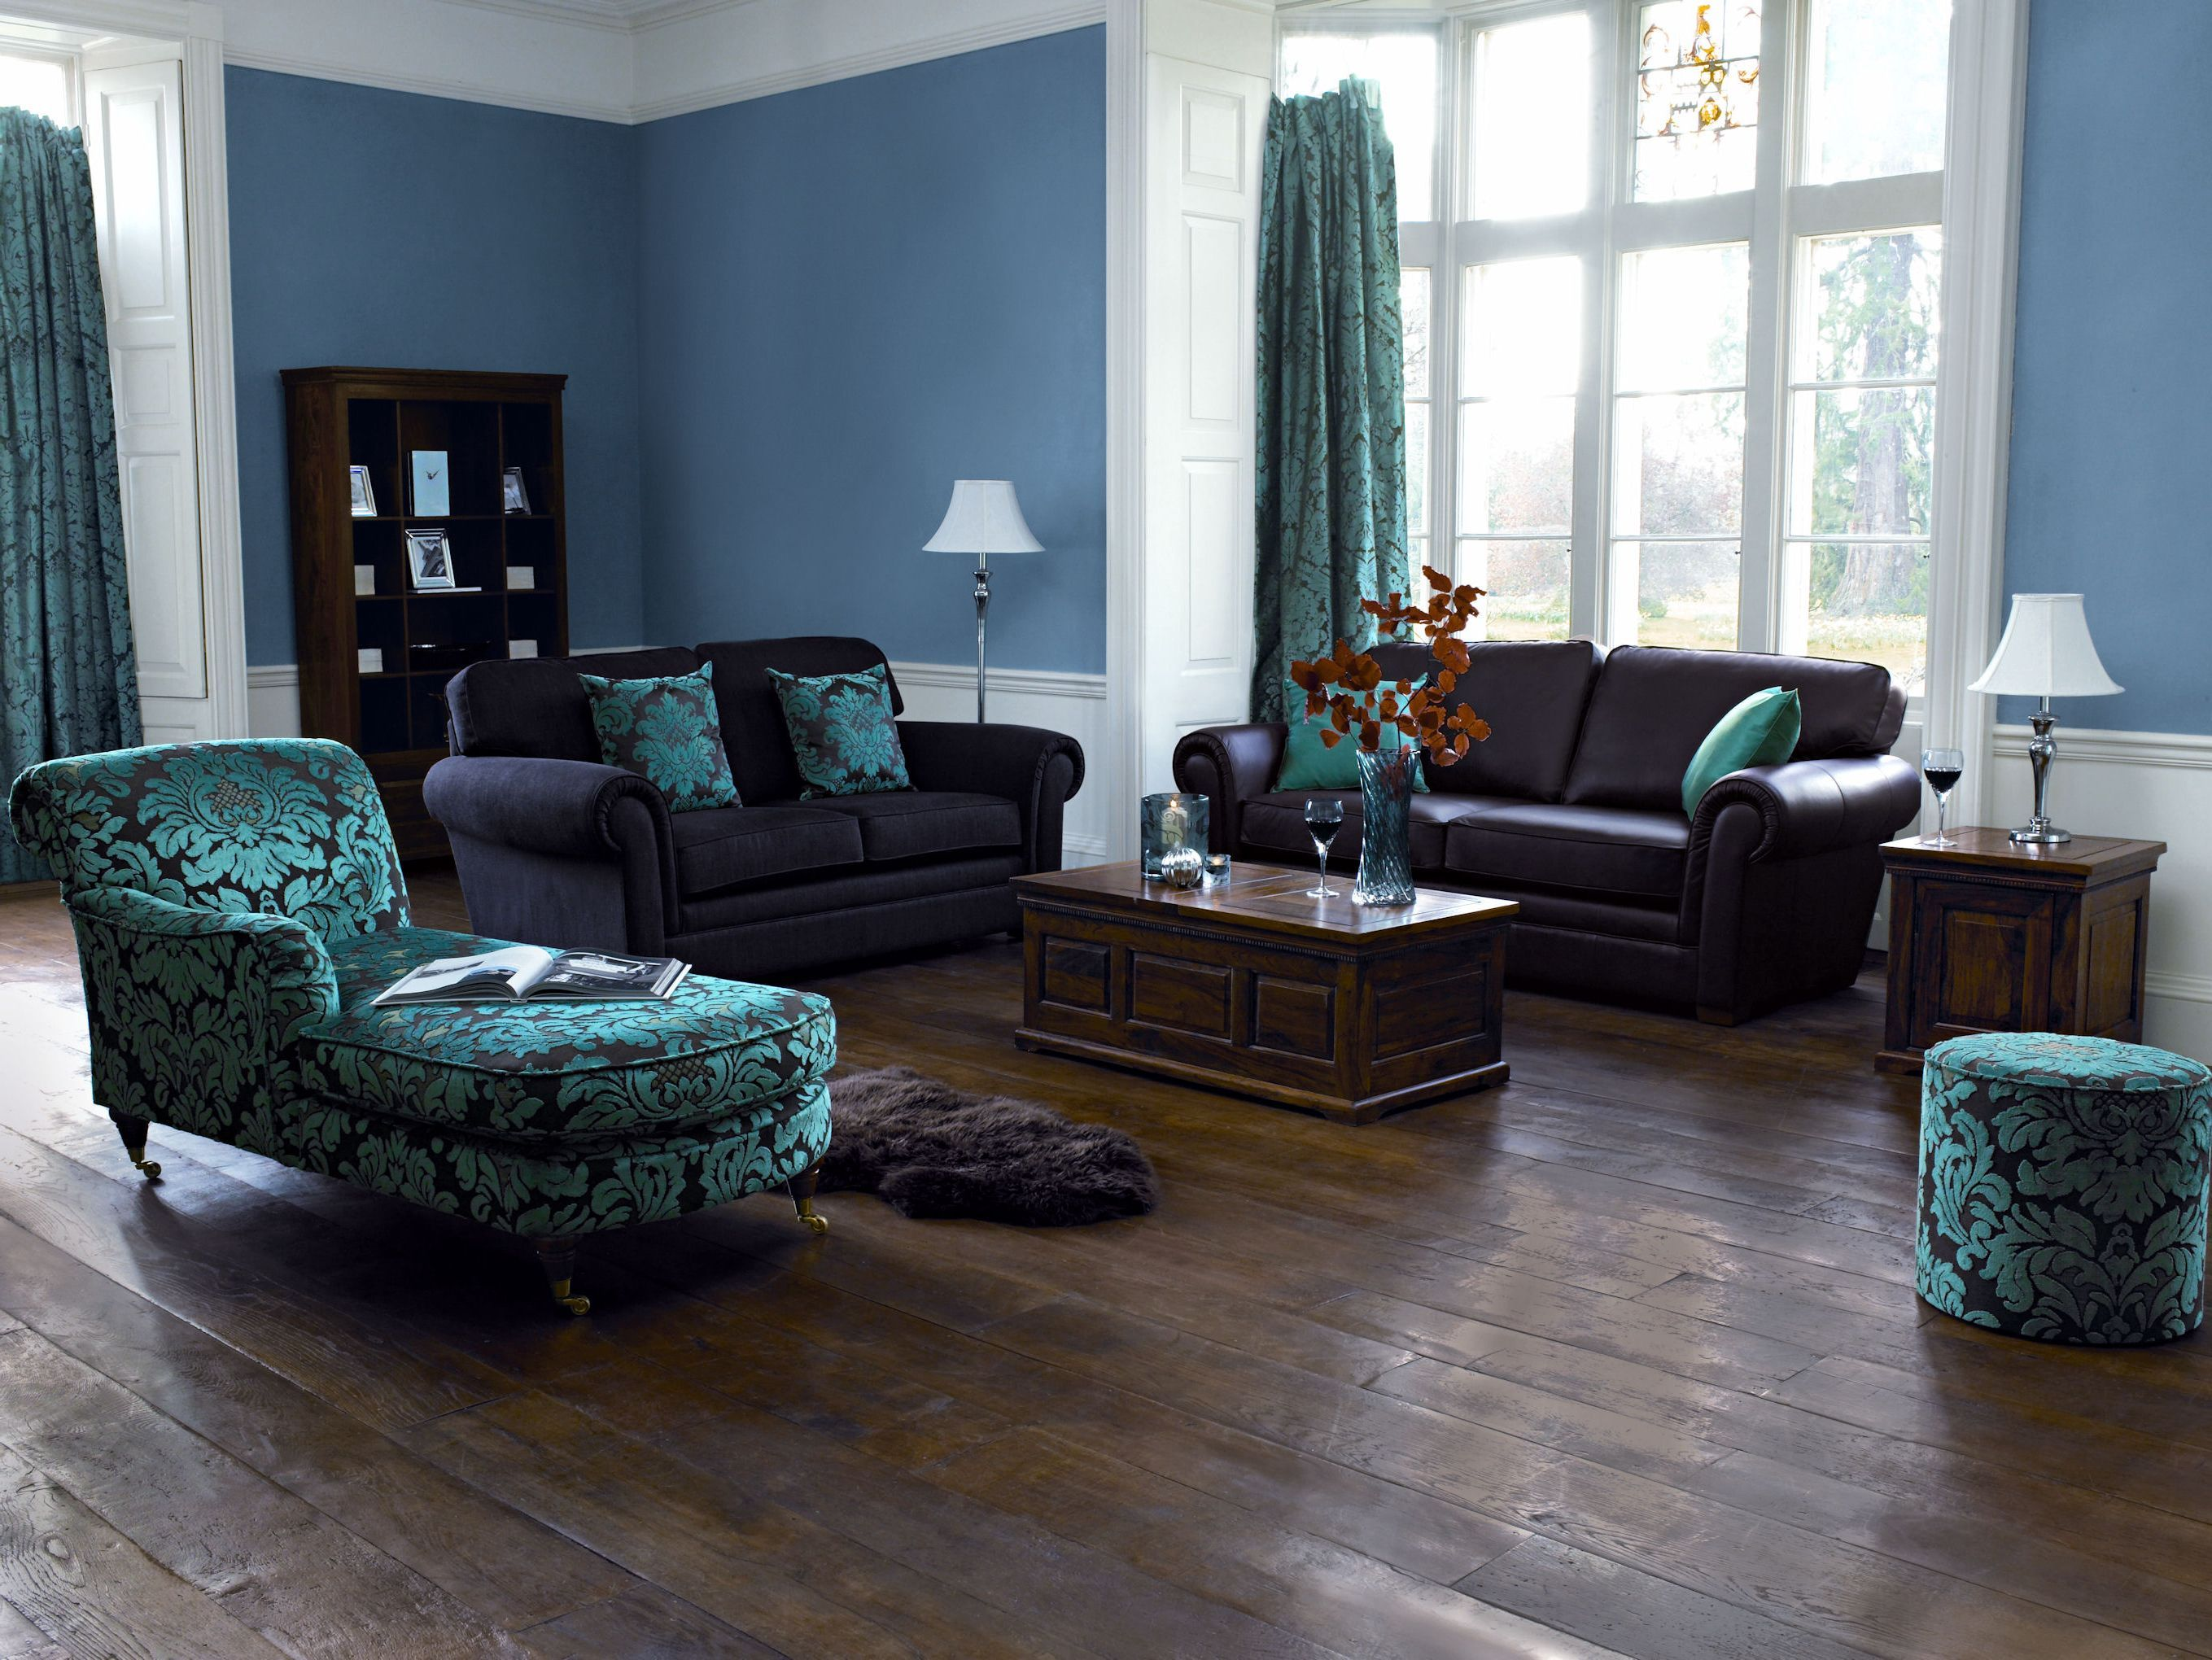 Living Room Colors For Dark Wood Floors living room , blue living room ideas for calm and relaxing